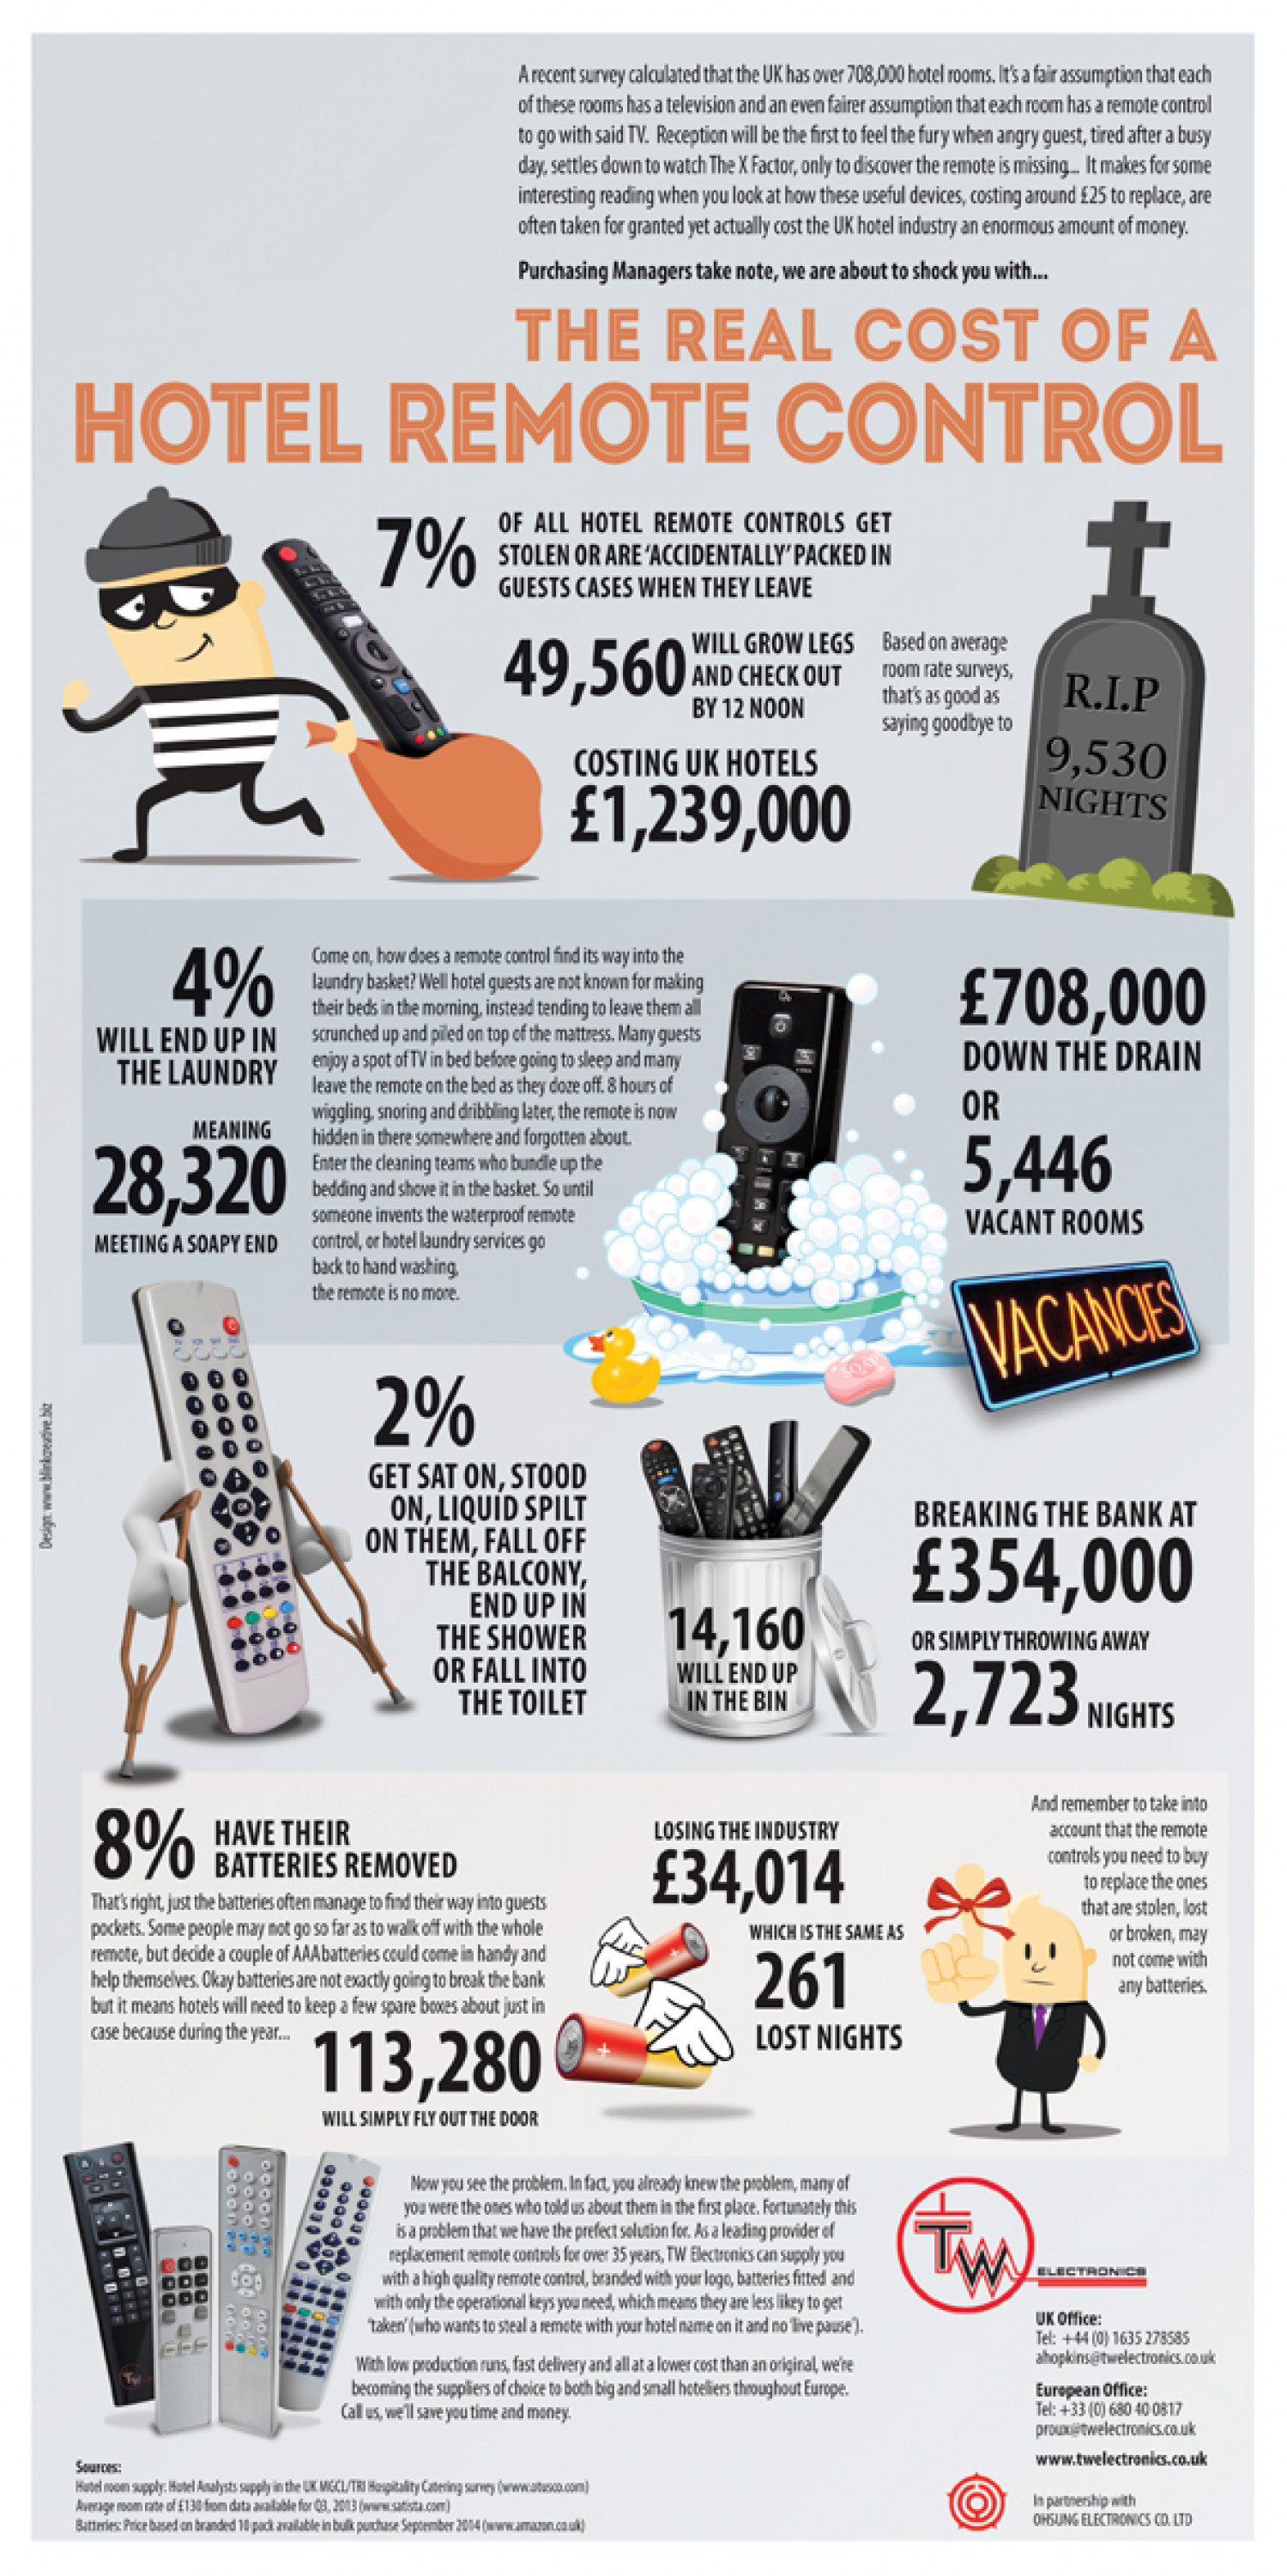 The real cost of hotel remote controls Infographic